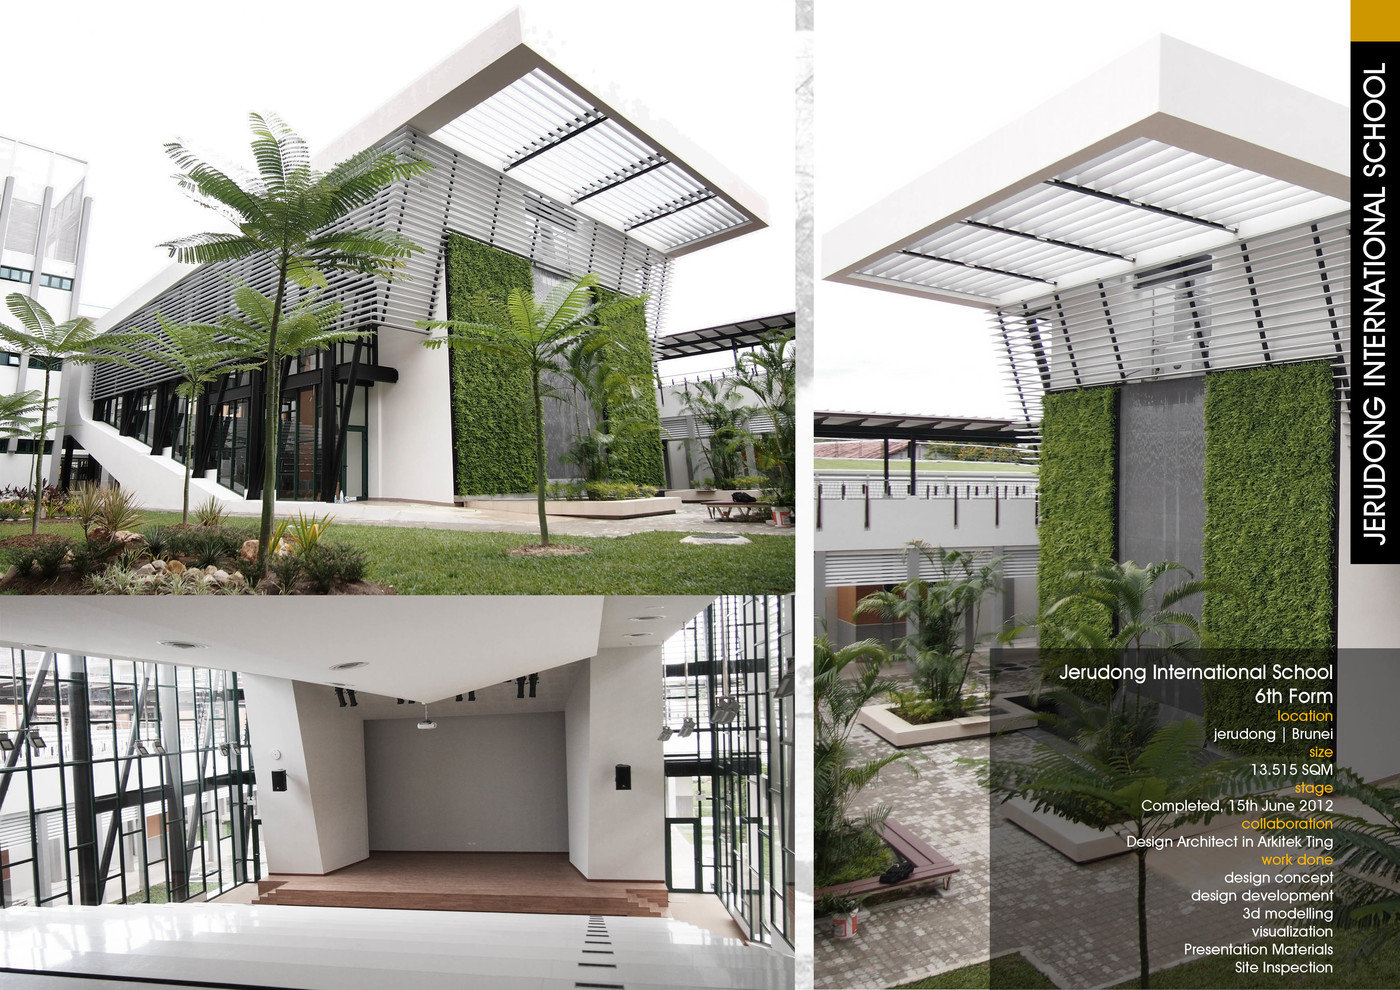 The Jerudong International School (JIS) 6th FORM Is One Of The First Green  Building In Brunei Darussalam, The Design Takes Form Blending From The ...